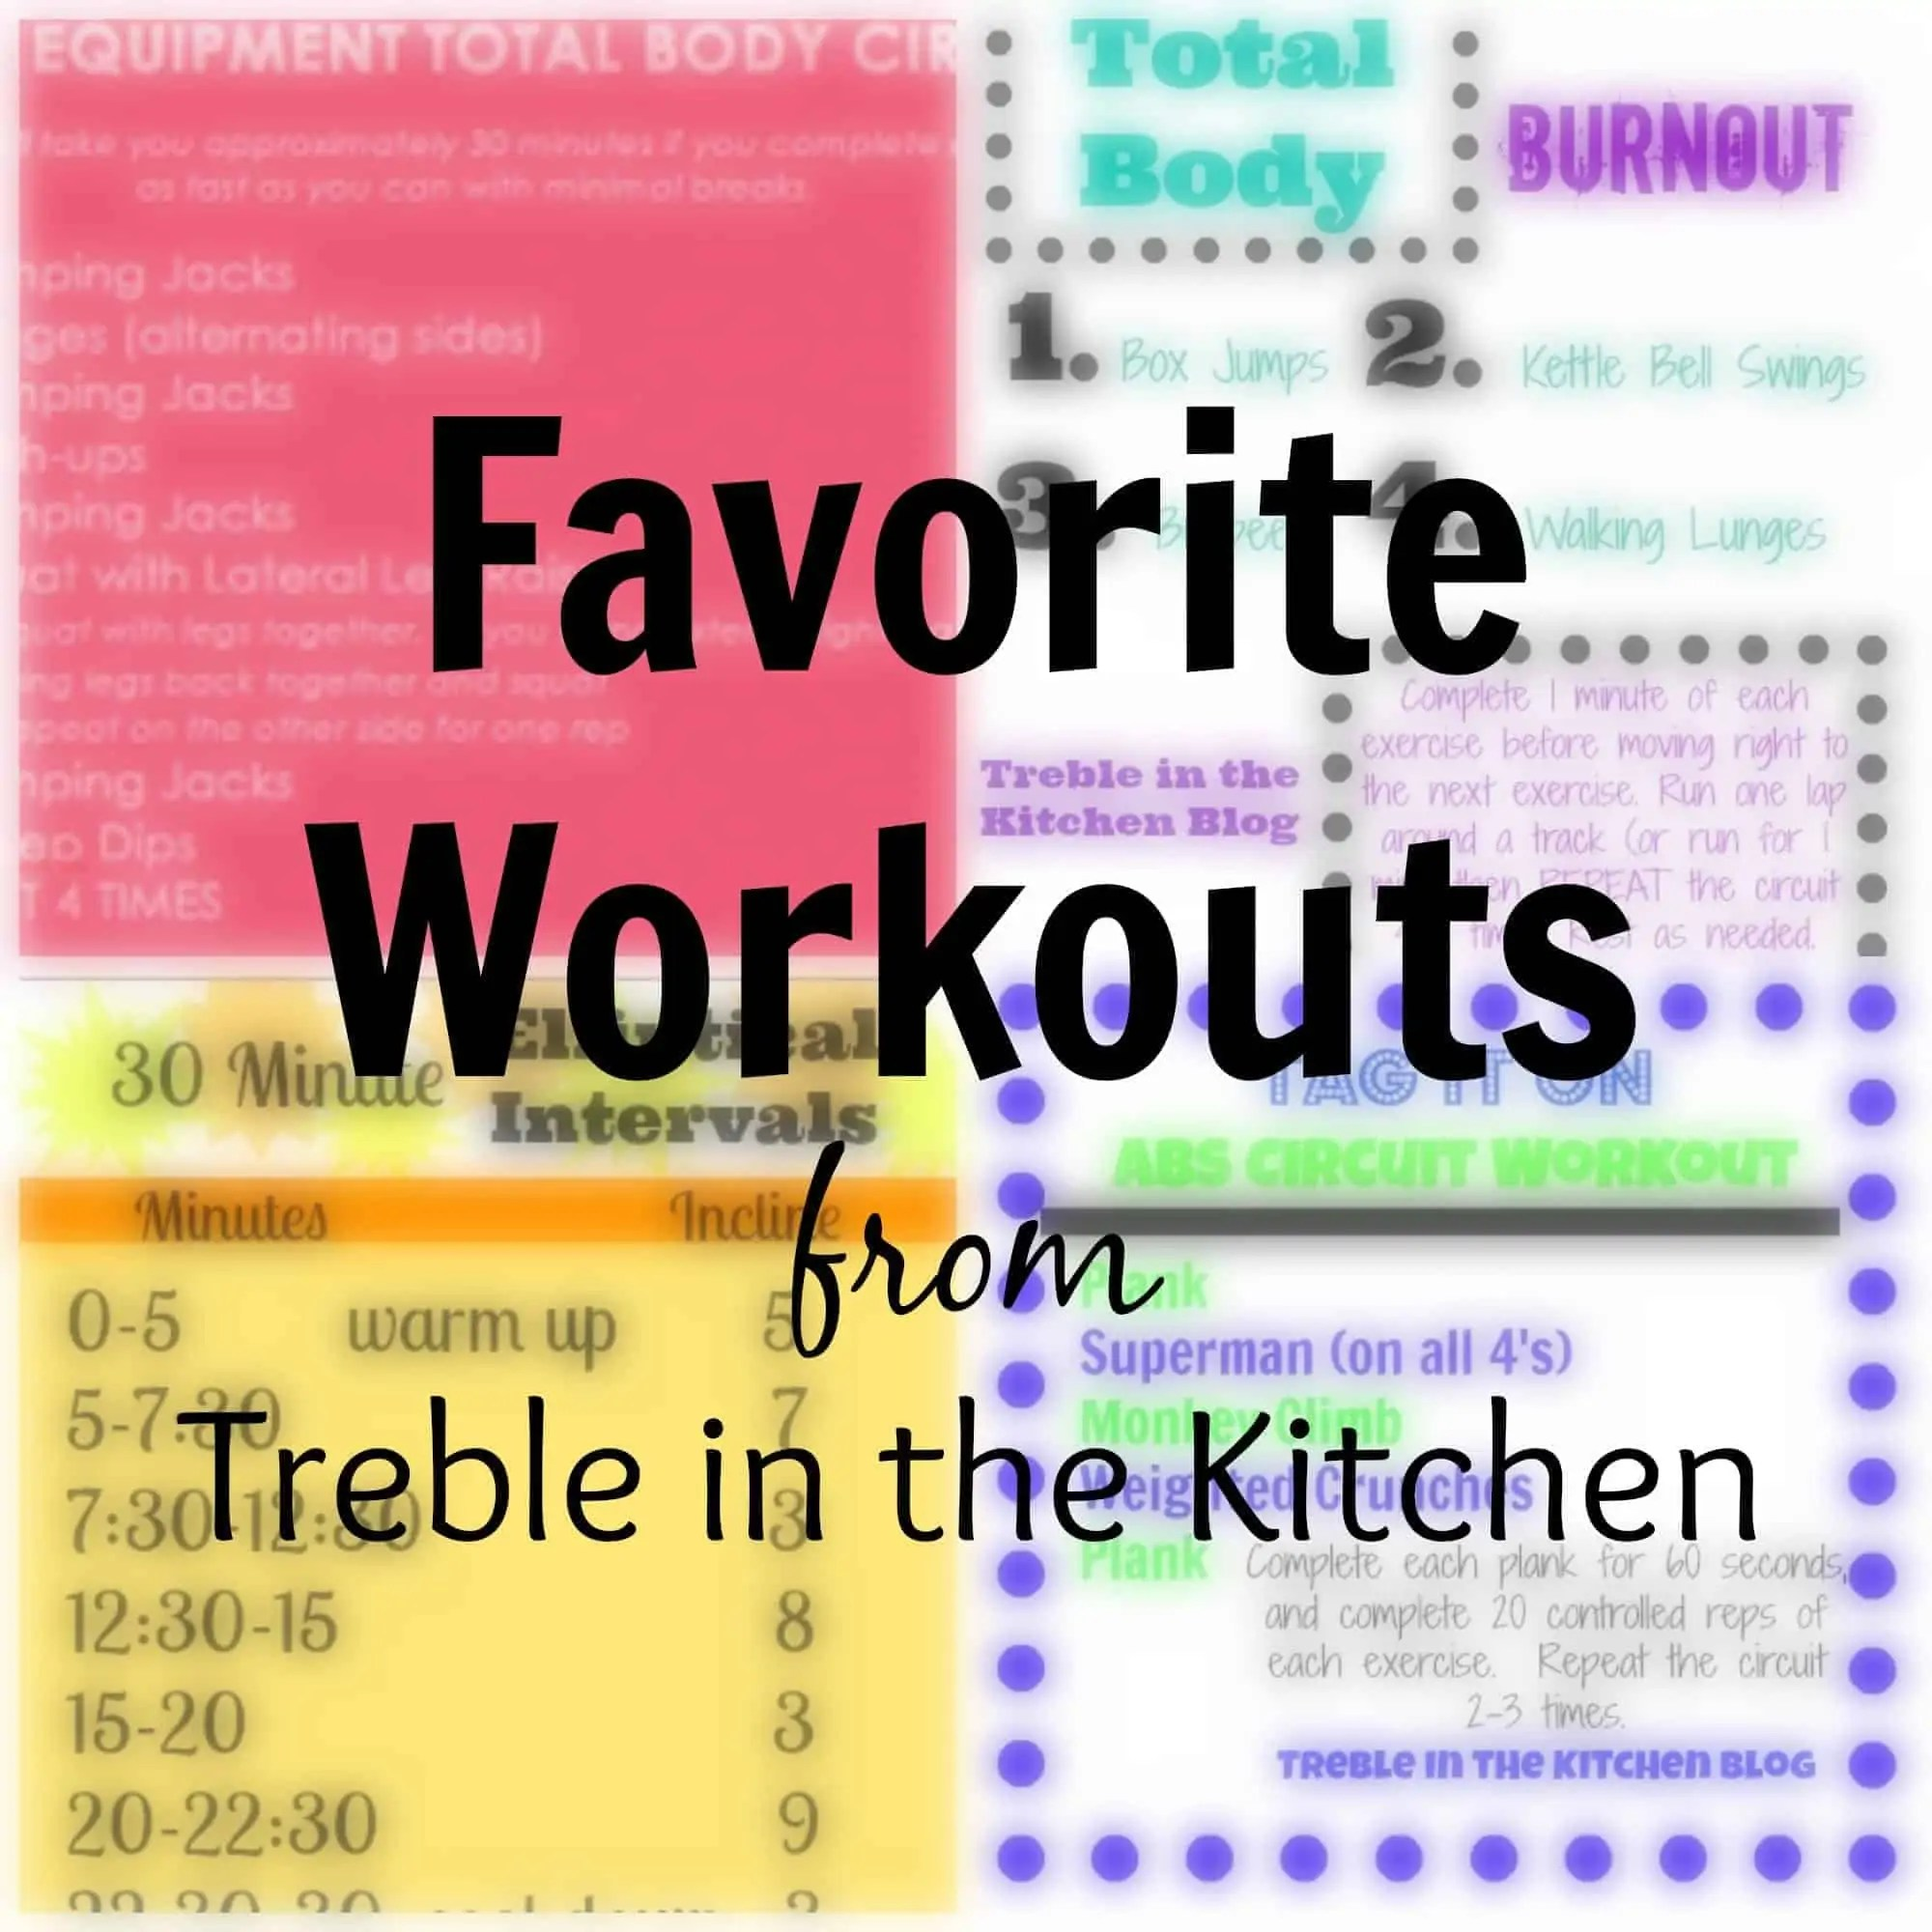 Workout Roundup via Treble in the Kitchen